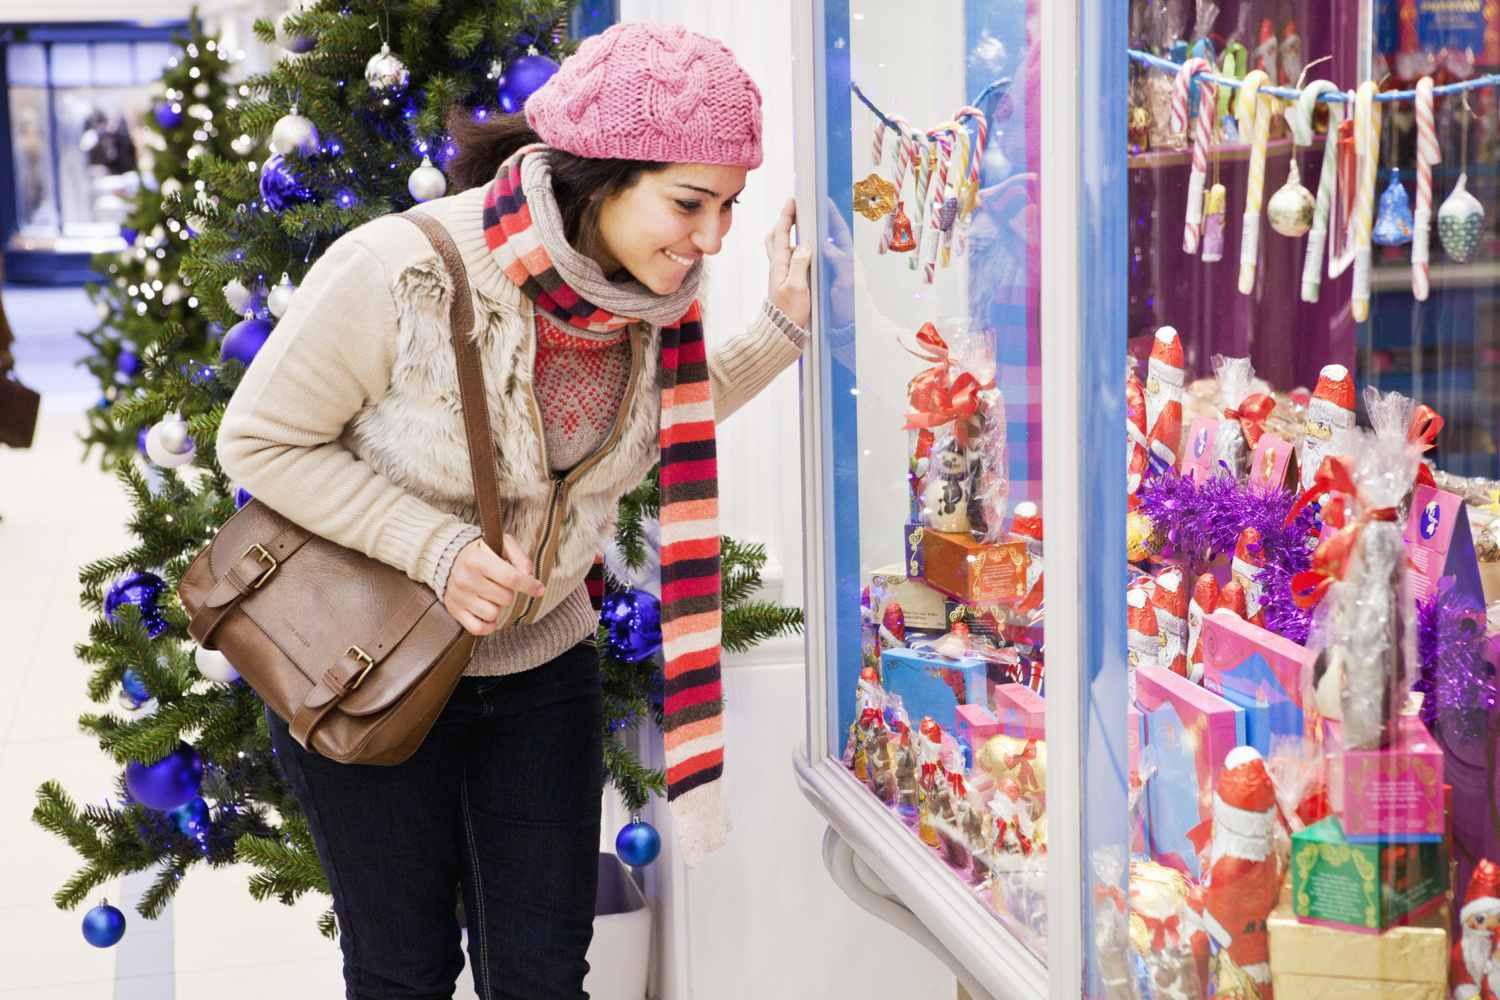 Woman window shopping during the holiday season